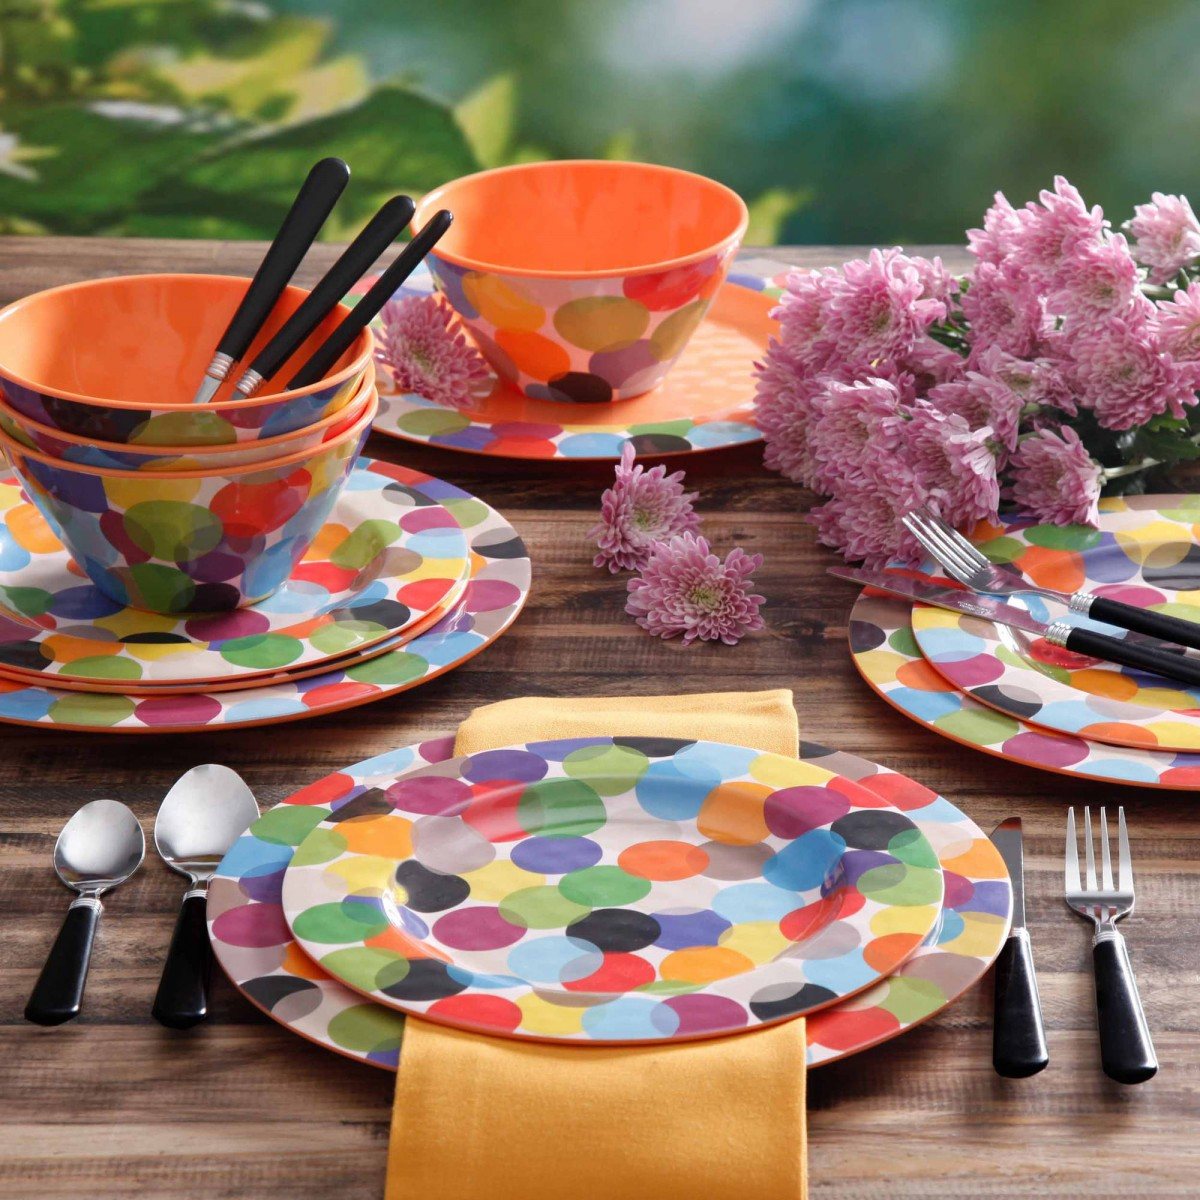 Jigsaw Puzzle Table set